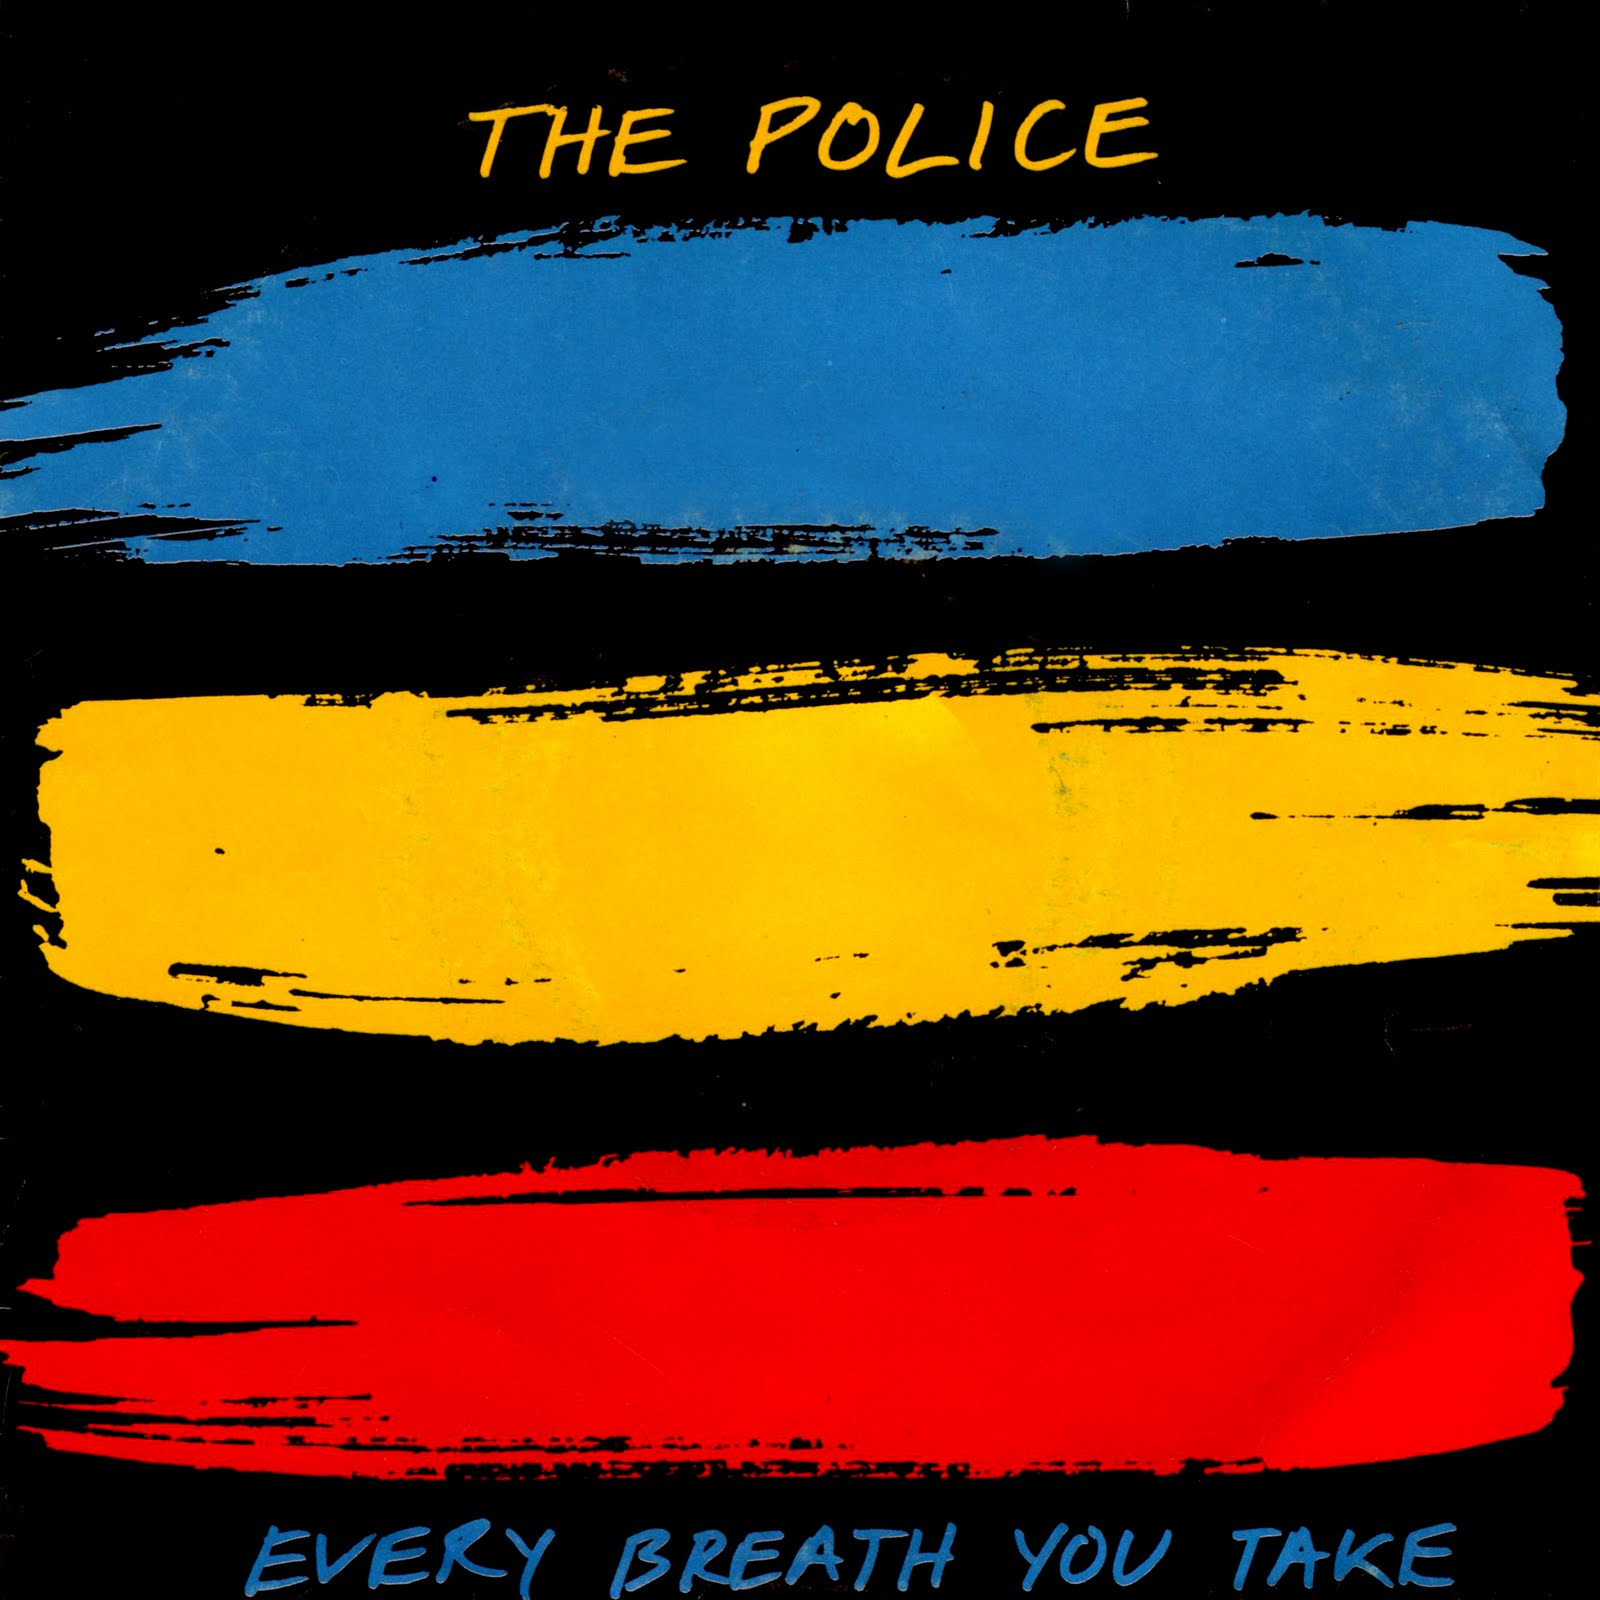 [80's] The Police - Every Breath You Take (1983) The%20Police%20-%20Every%20Breath%20You%20Take